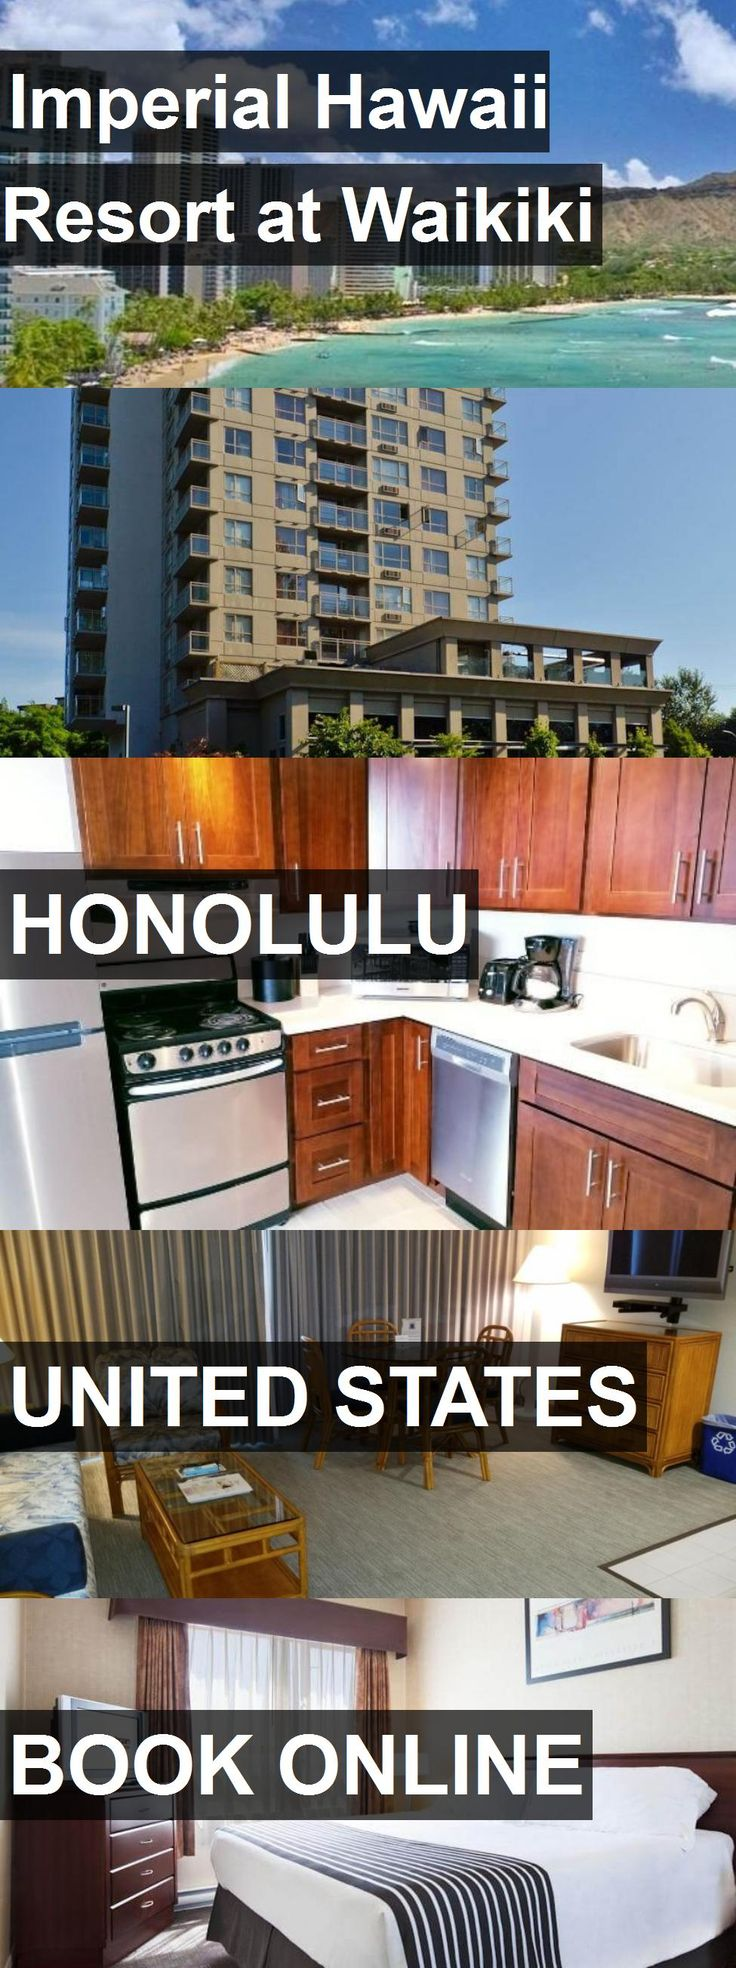 Hotel Imperial Hawaii Resort at Waikiki in Honolulu, United States. For more information, photos, reviews and best prices please follow the link. #UnitedStates #Honolulu #travel #vacation #hotel